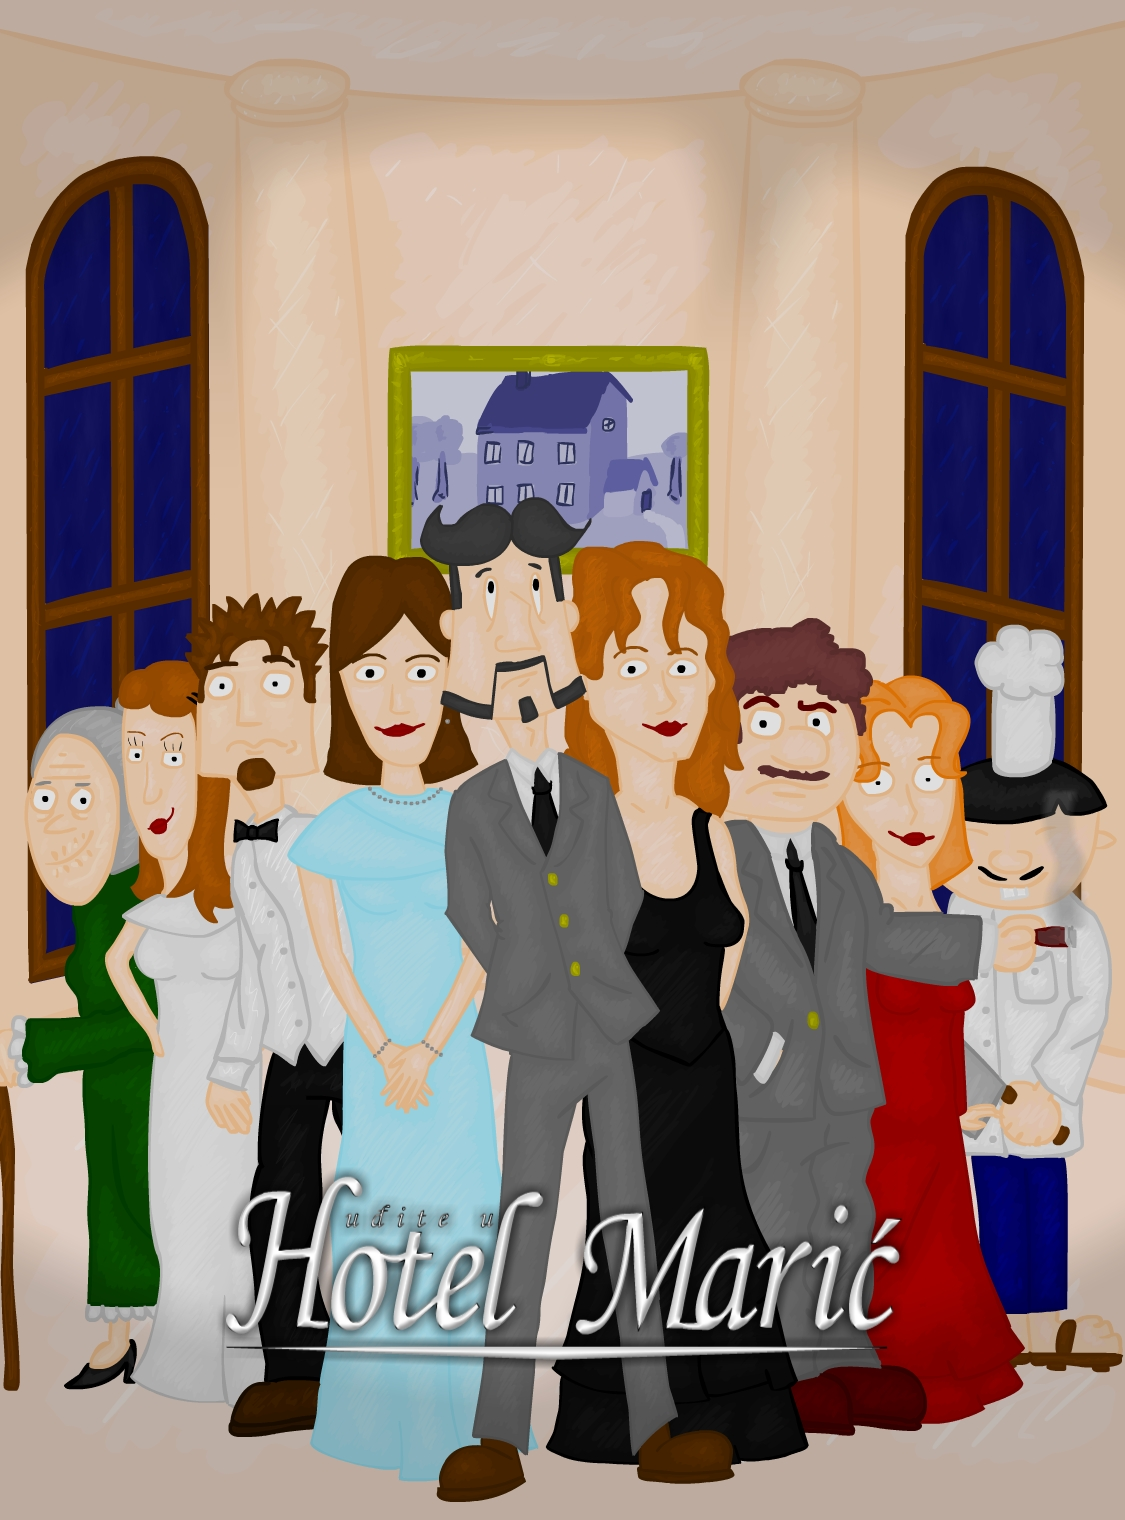 The Maric Hotel poster